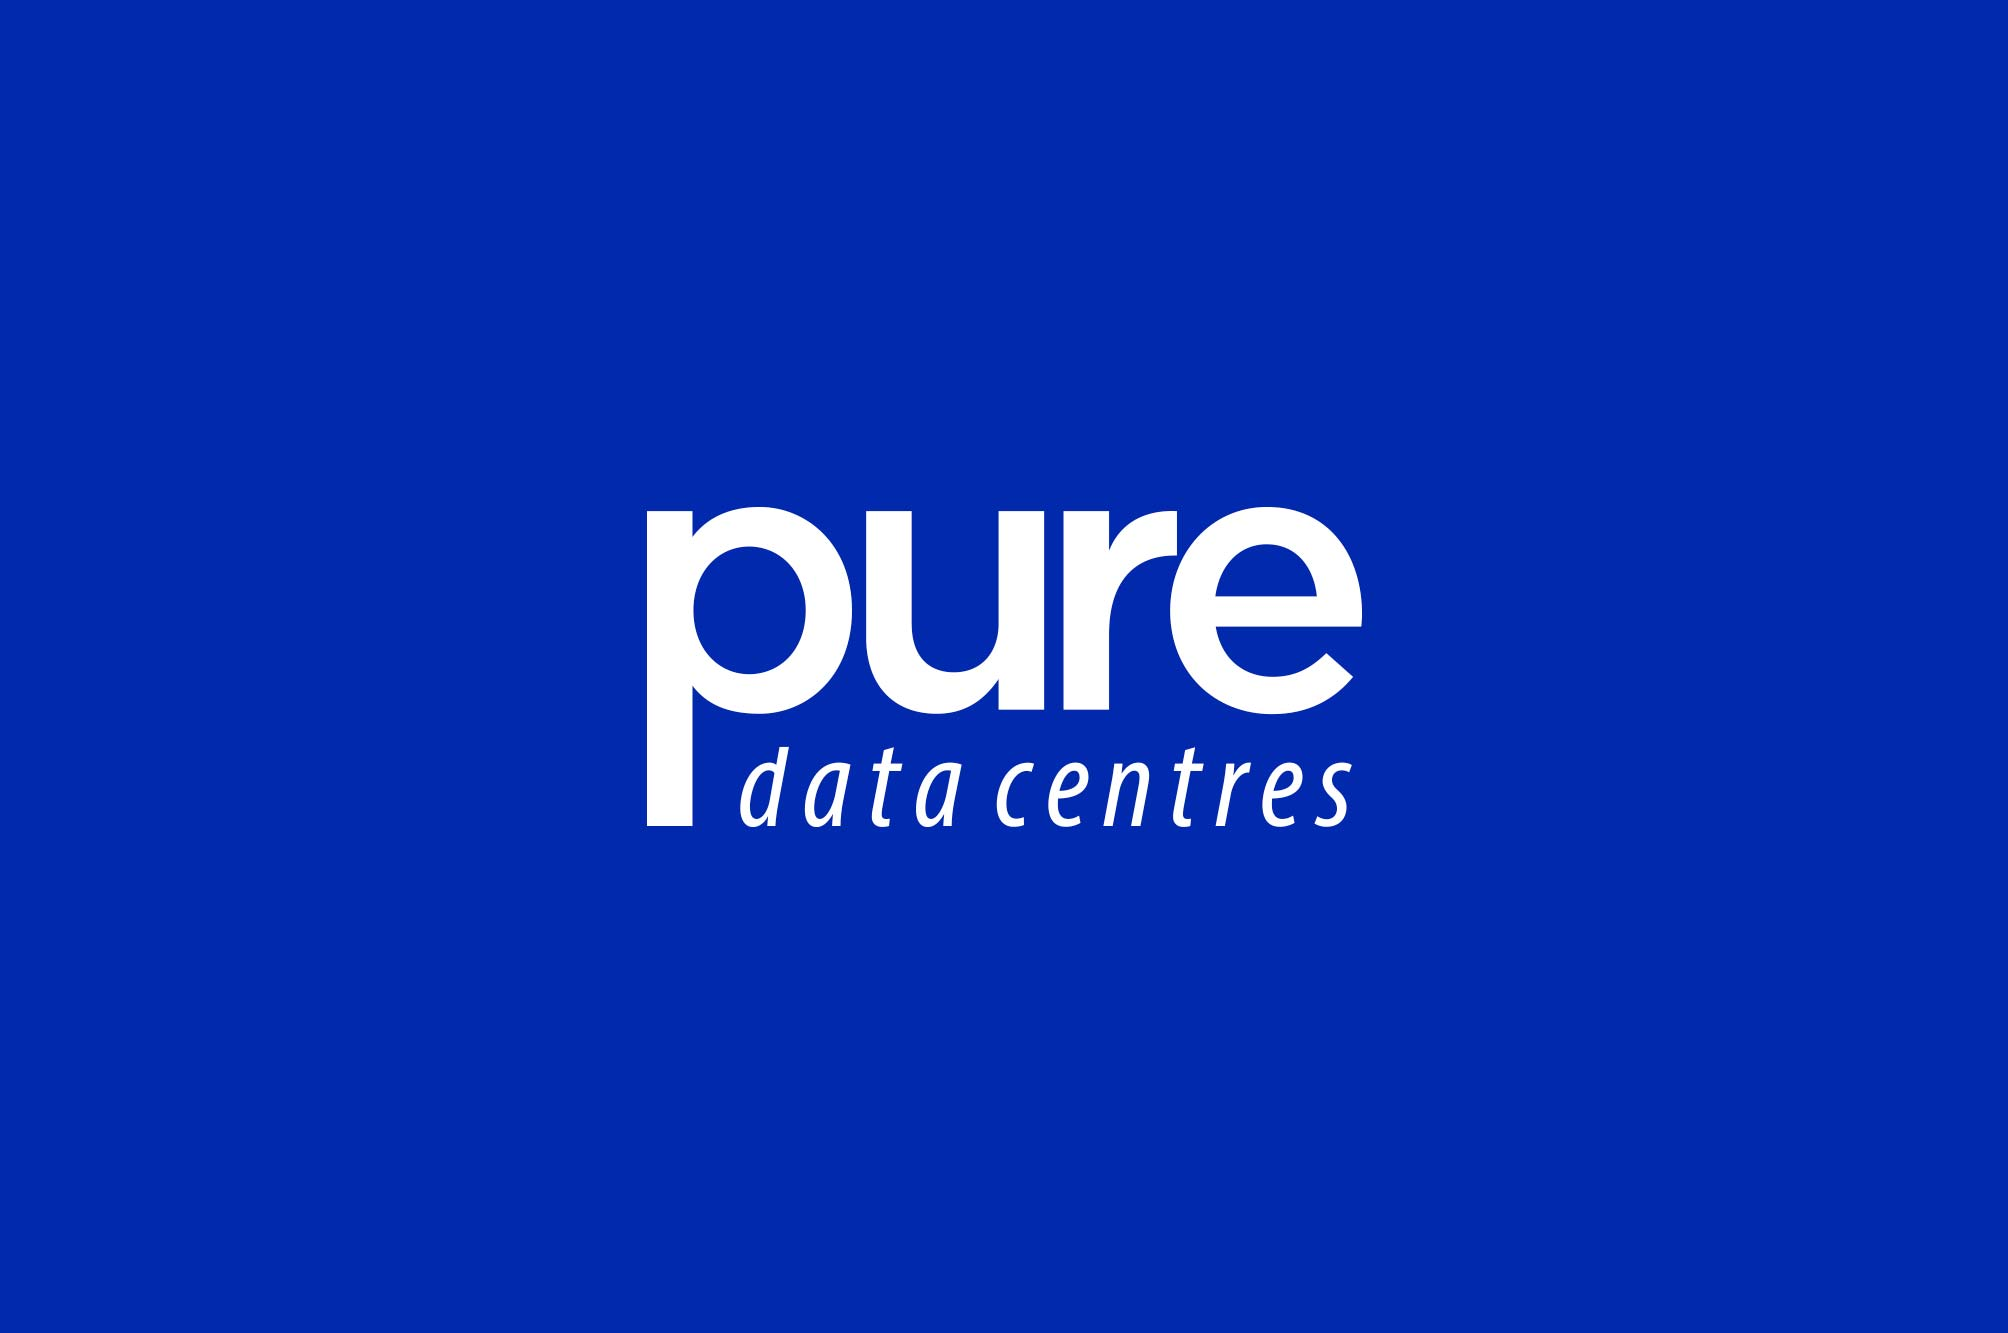 Pure-Data-Centres-Wide-14